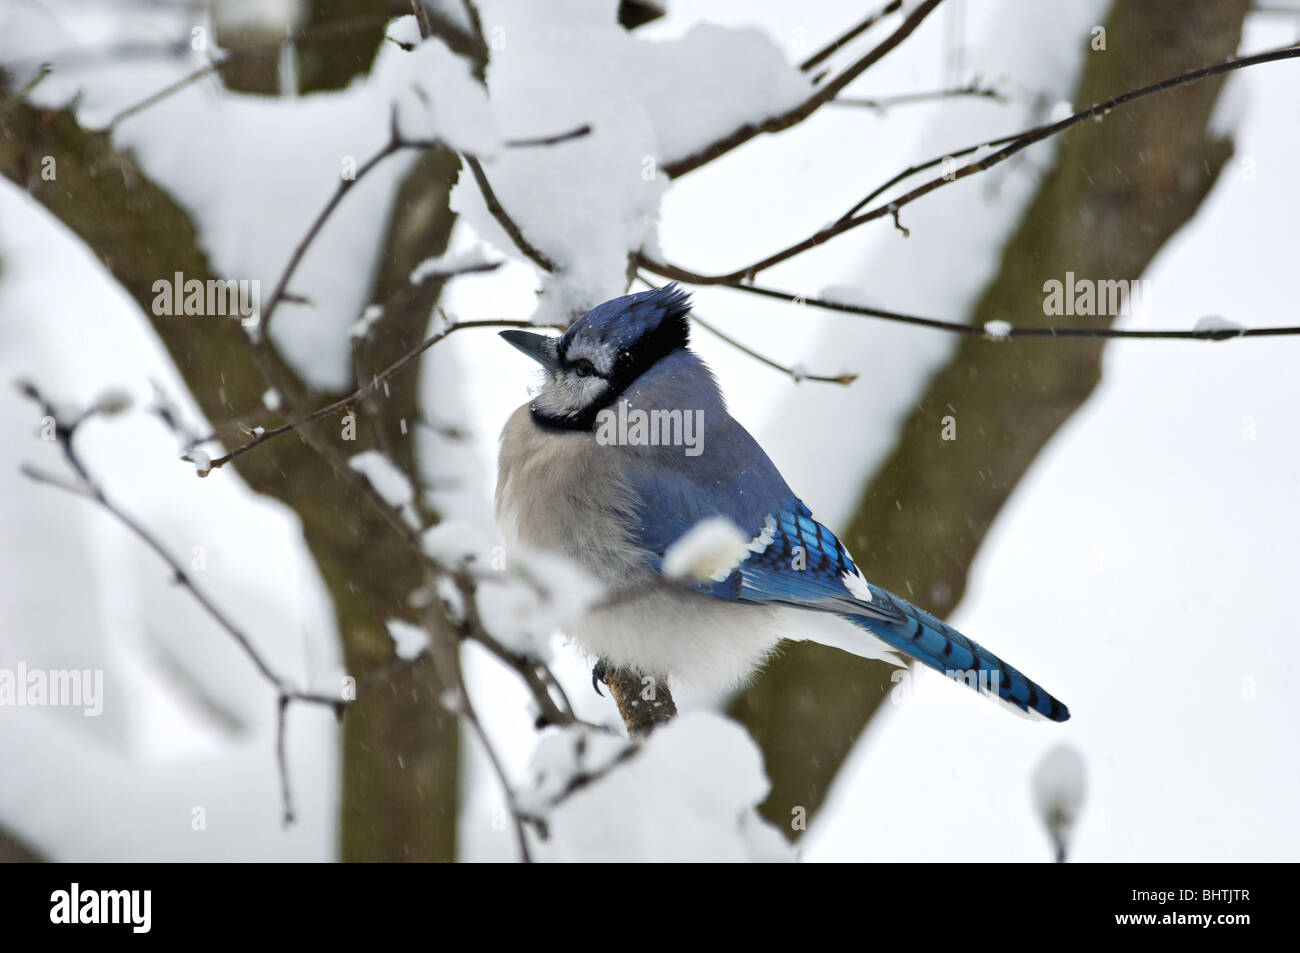 Blue Jay Perched on Branch in Snow Stock Photo